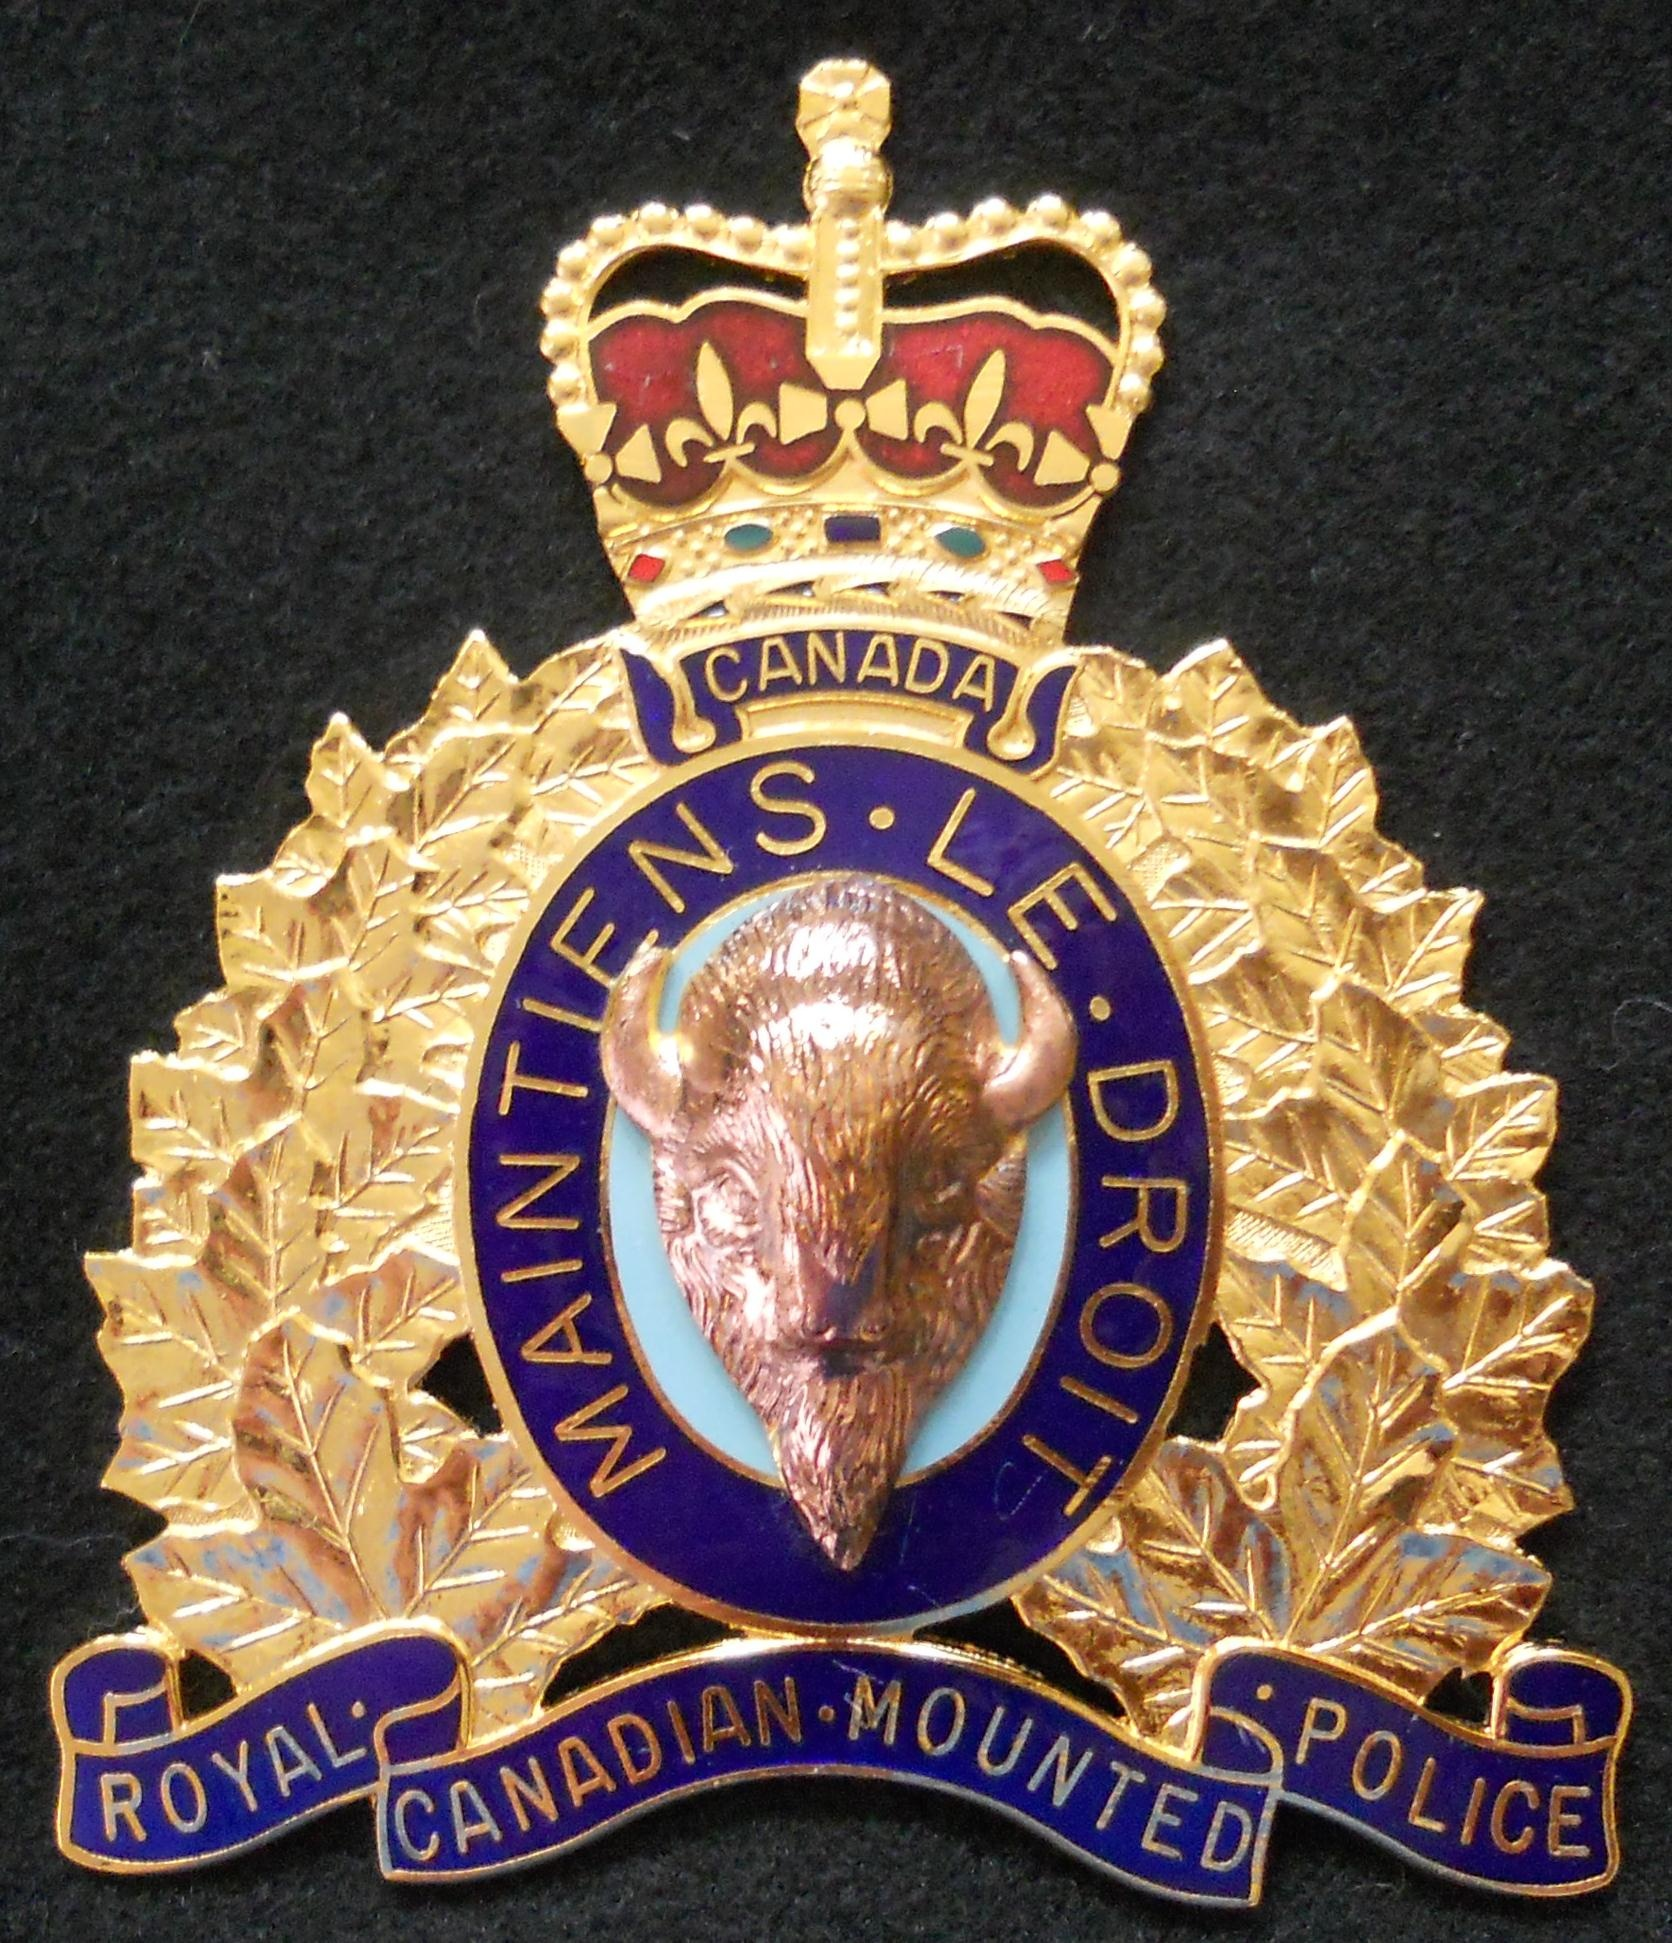 ONE PERSON IN CUSTODY FOLLOWING INCIDENT IN LEDUC